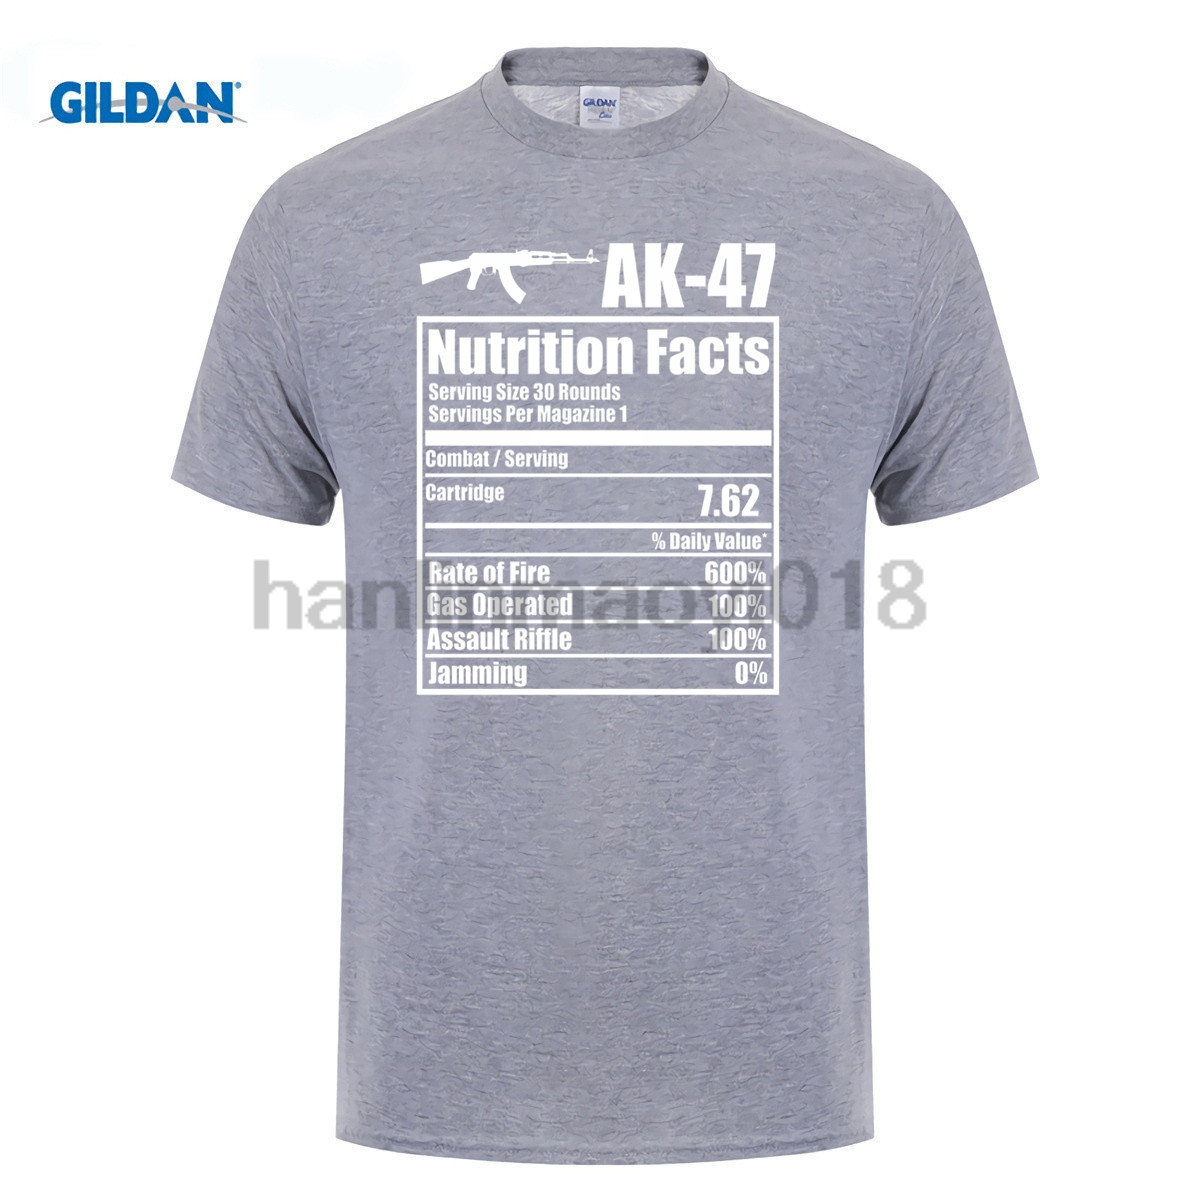 cf7fc2b7 GILDAN 2018 AK 47 Nutrition Facts Funny Gun T Shirt-in T-Shirts from Men's  Clothing on Aliexpress.com | Alibaba Group